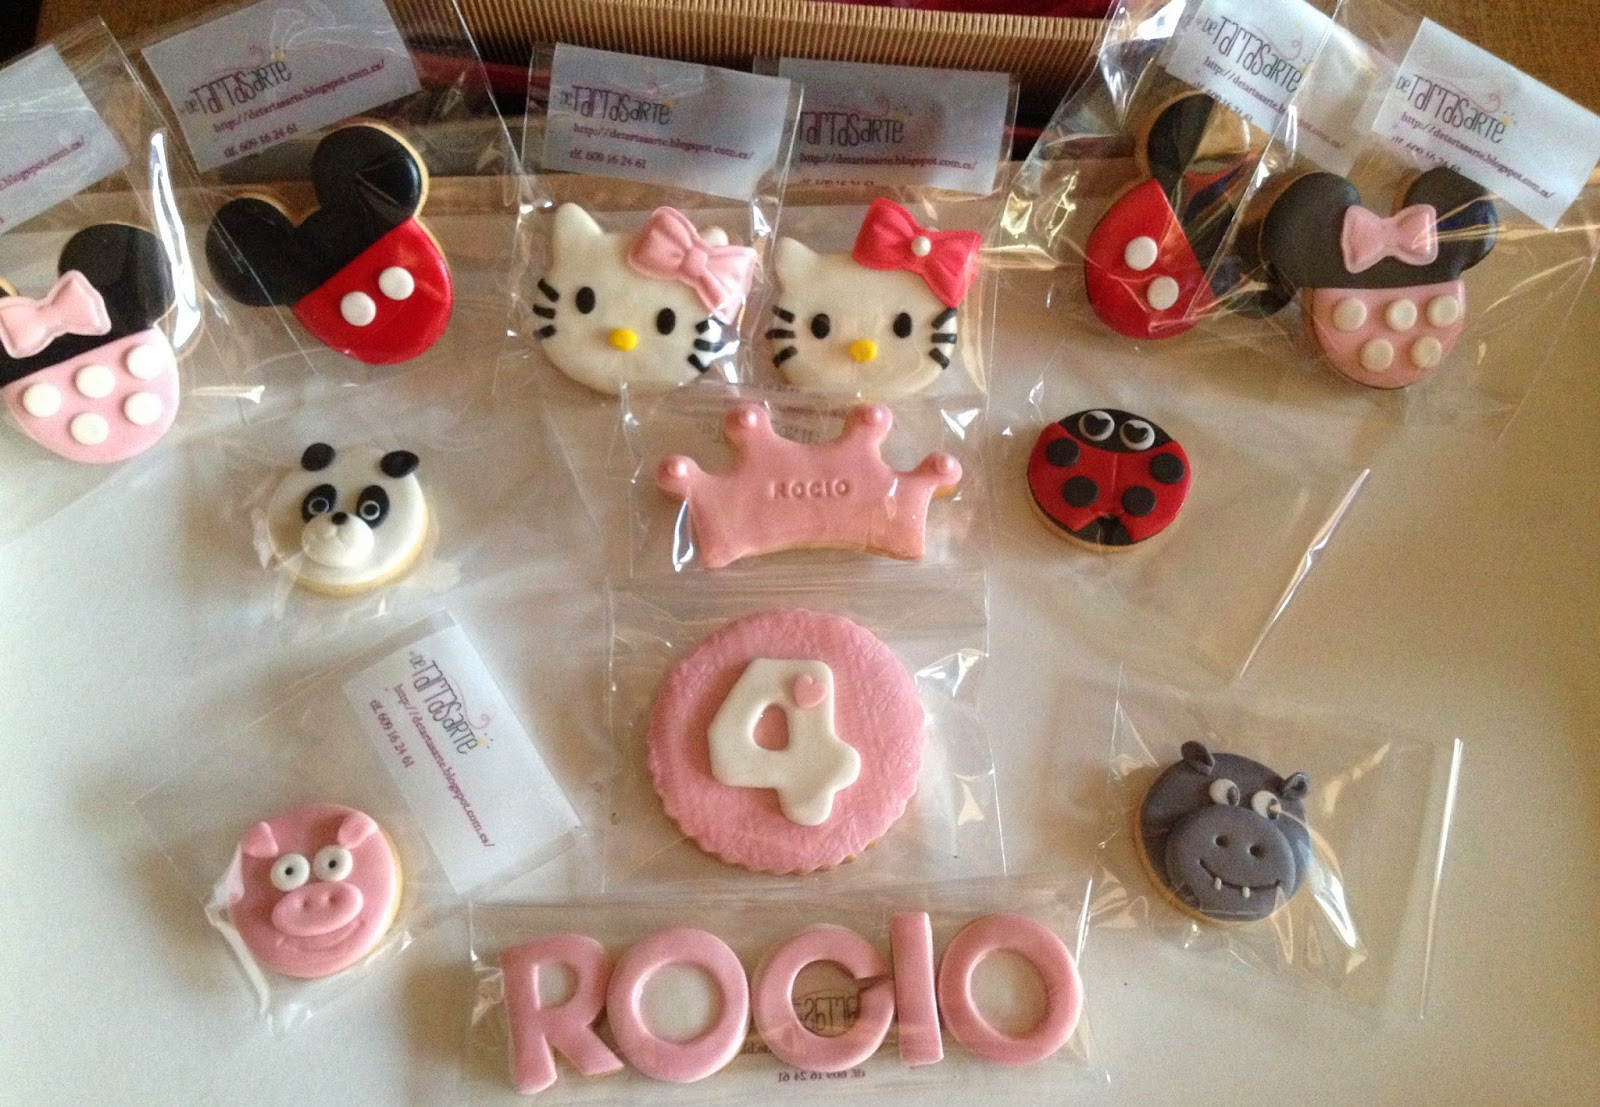 galletas decoradas, galletas fondant